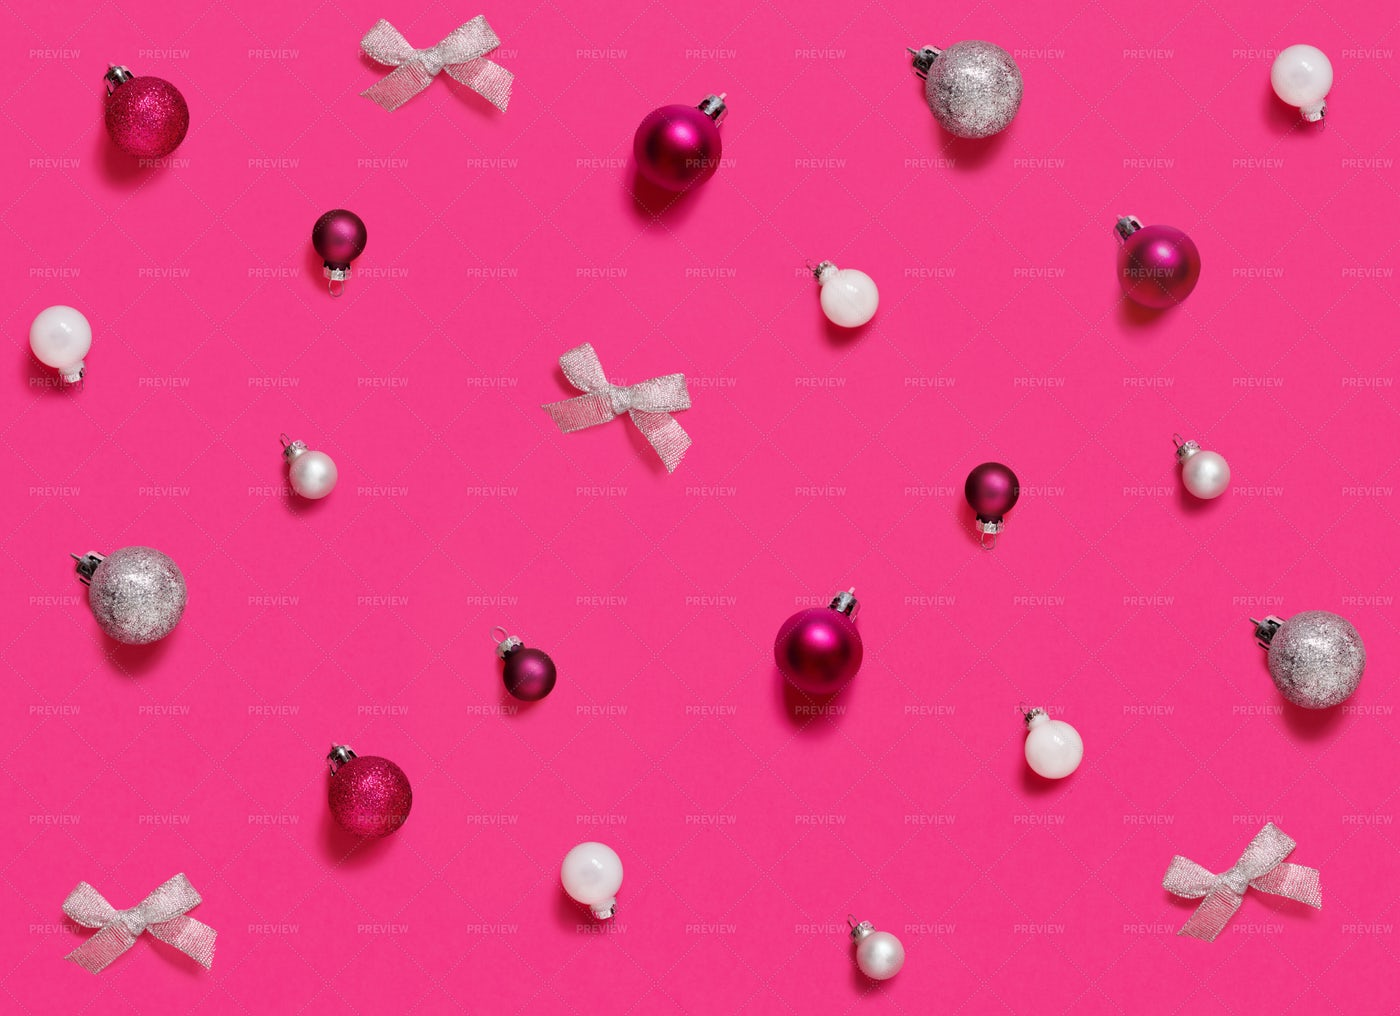 Christmas Decorations On Pink: Stock Photos